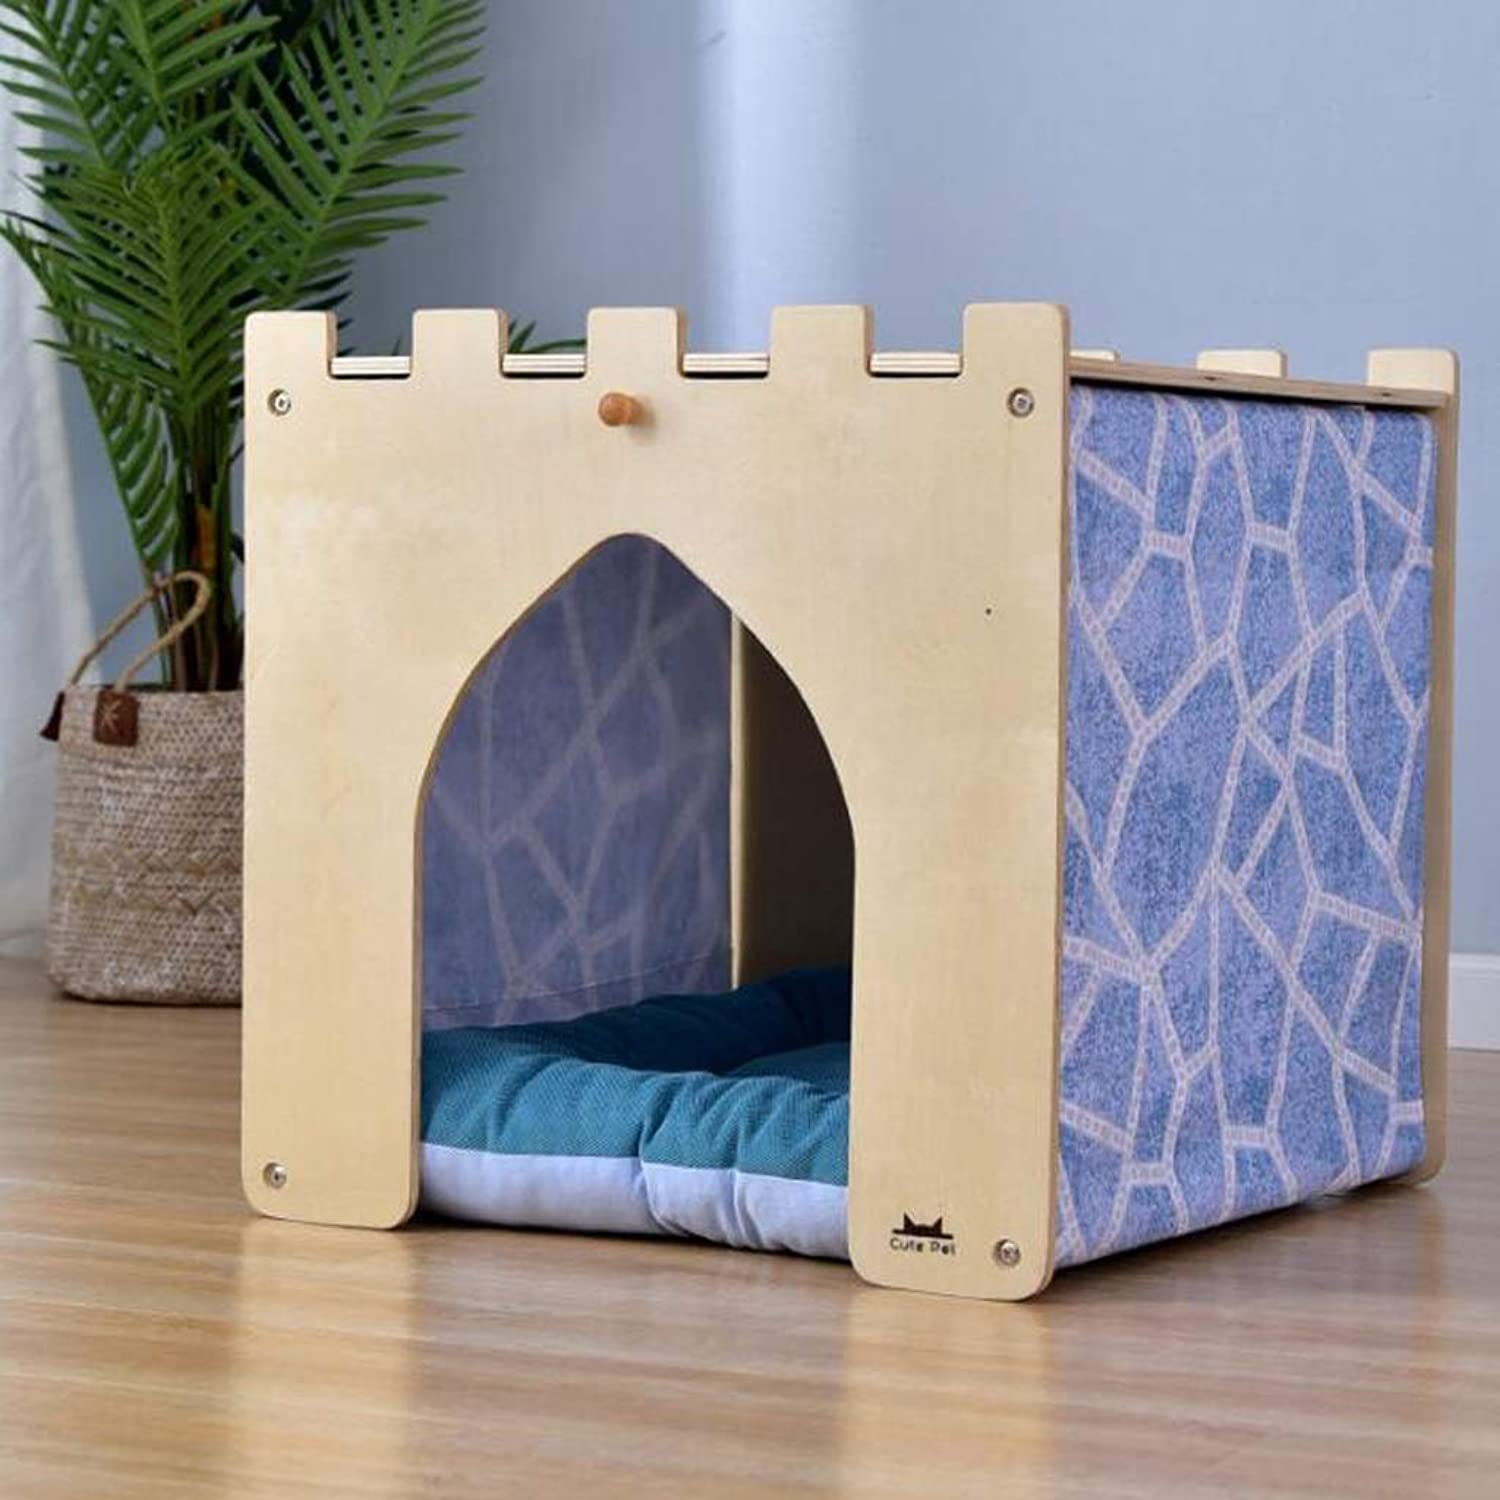 Cat Nest Indoor Creative Dog House Wooden Small Dog Pet House Multifunction Small Table Pet Villa SMBYLL (color   B, Size   S)